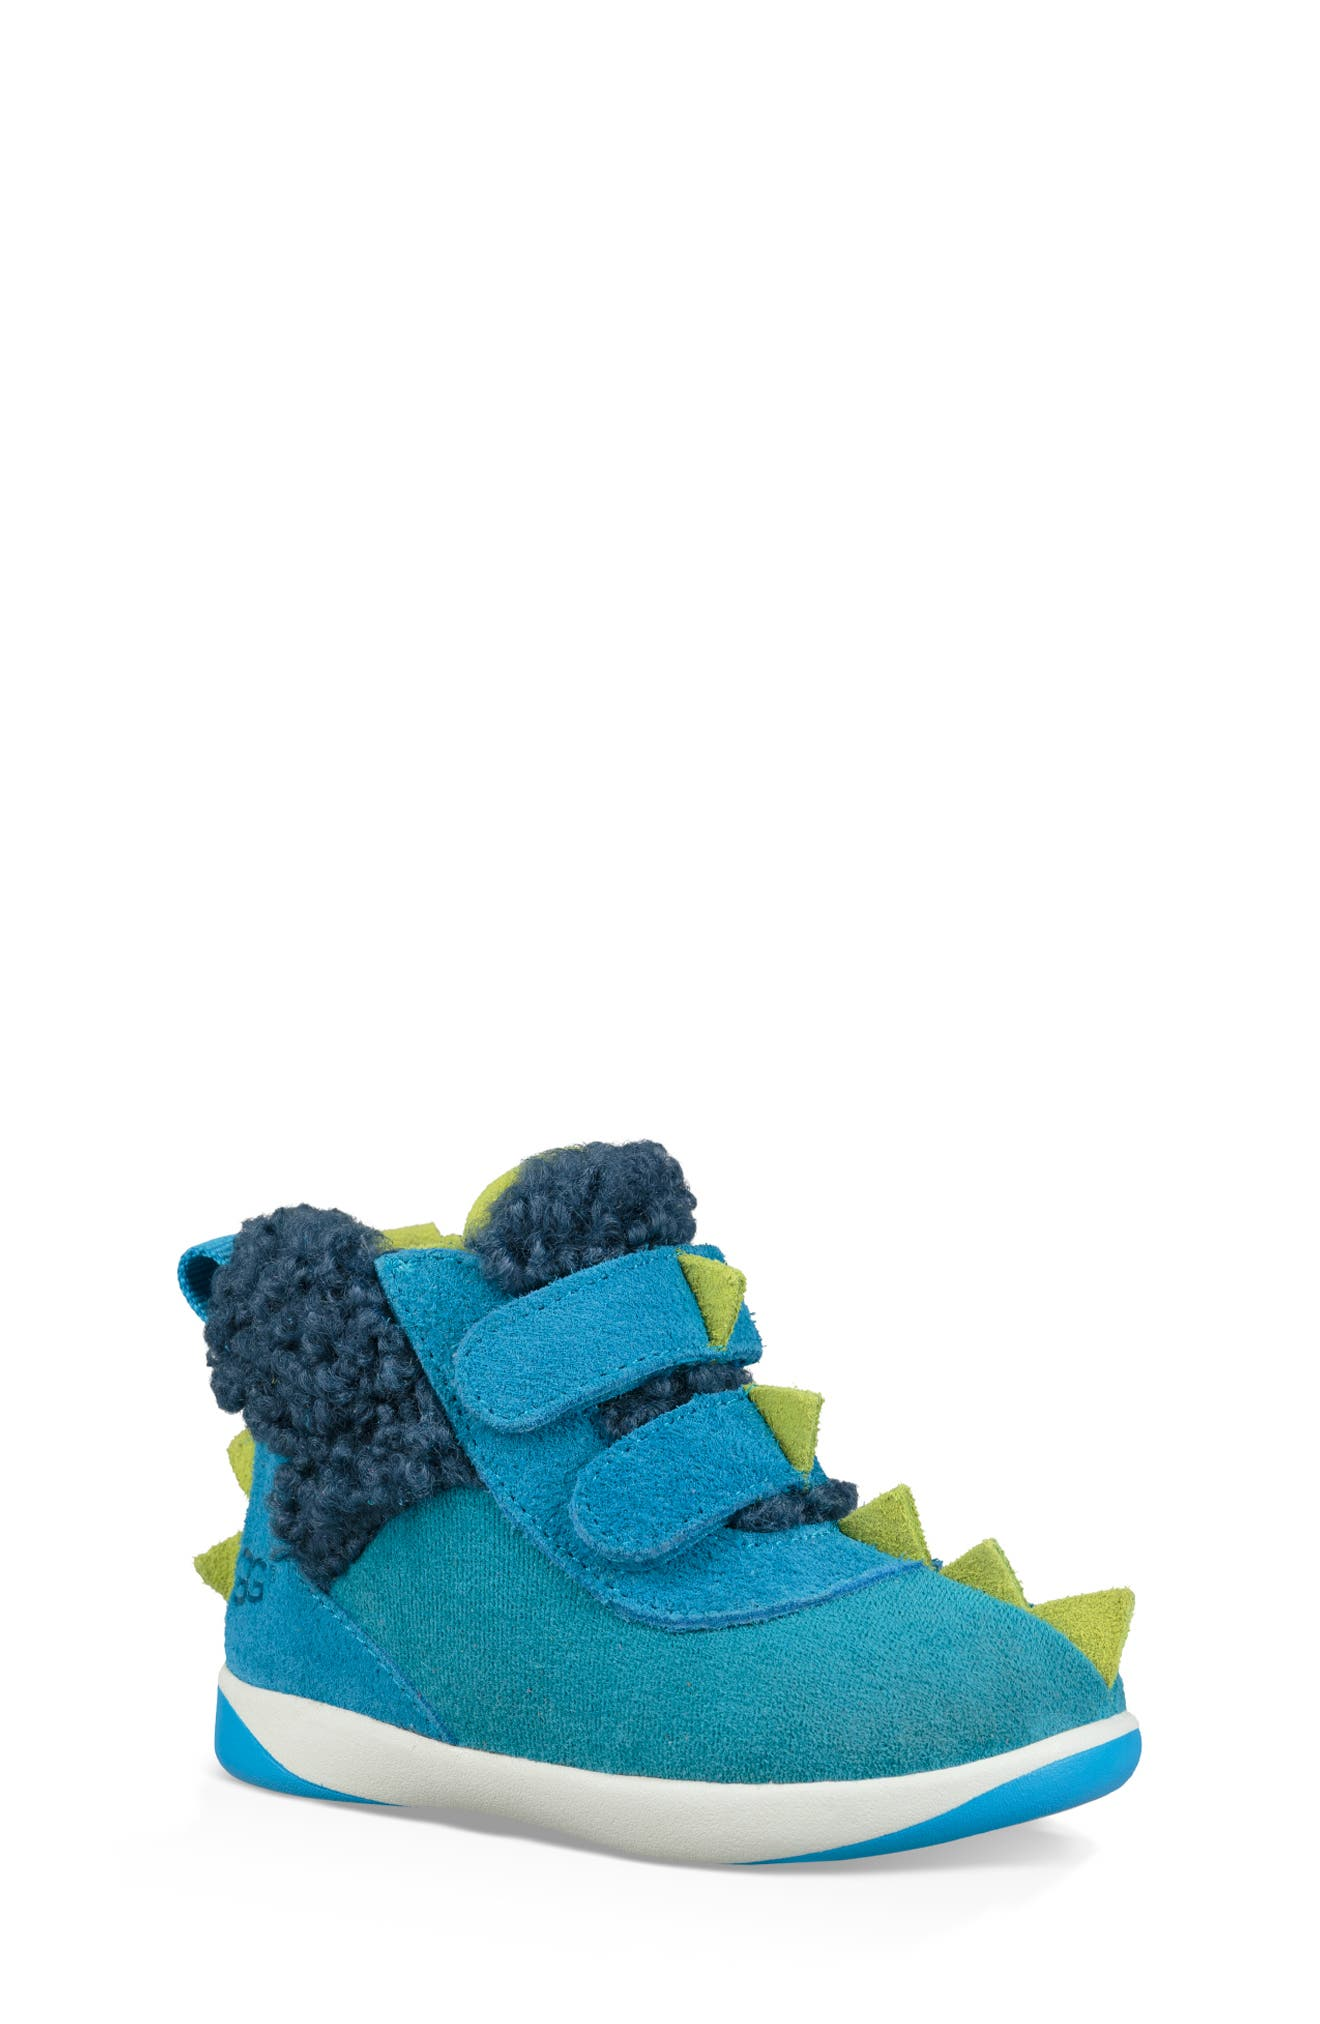 Dydo Pritchard Bootie,                         Main,                         color, BLUE MULTI